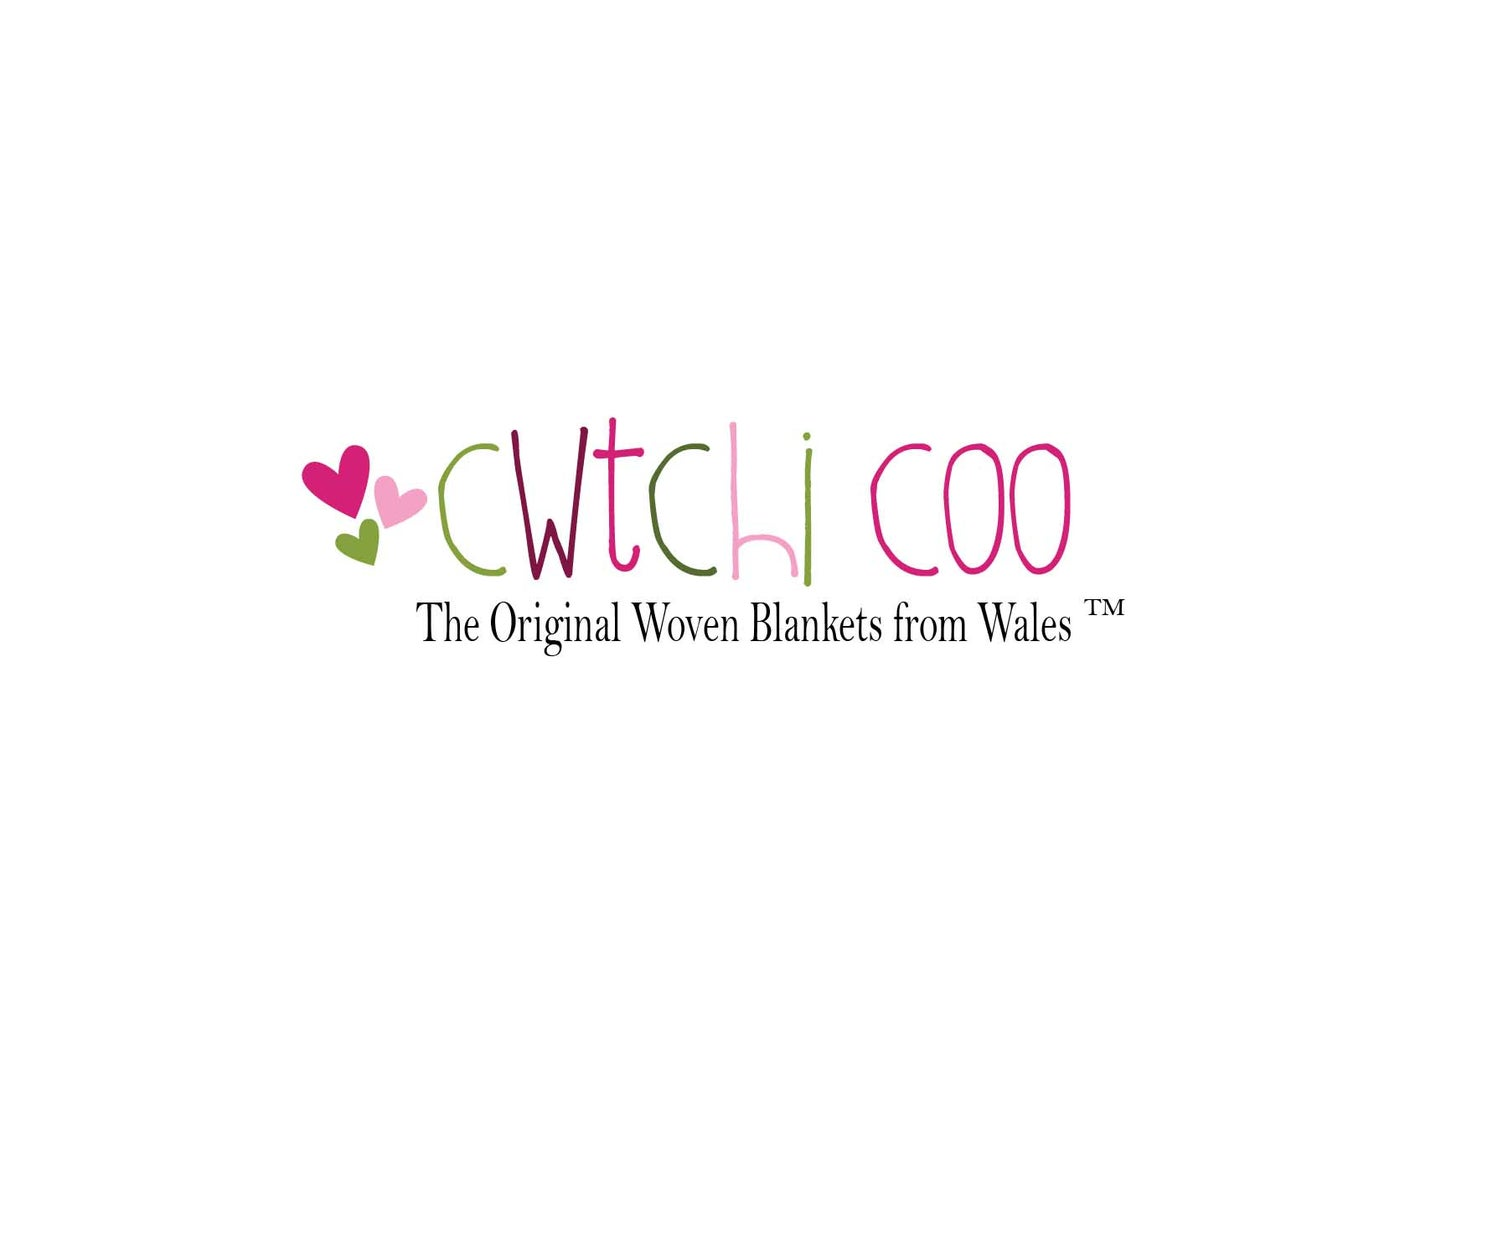 cwt chicco